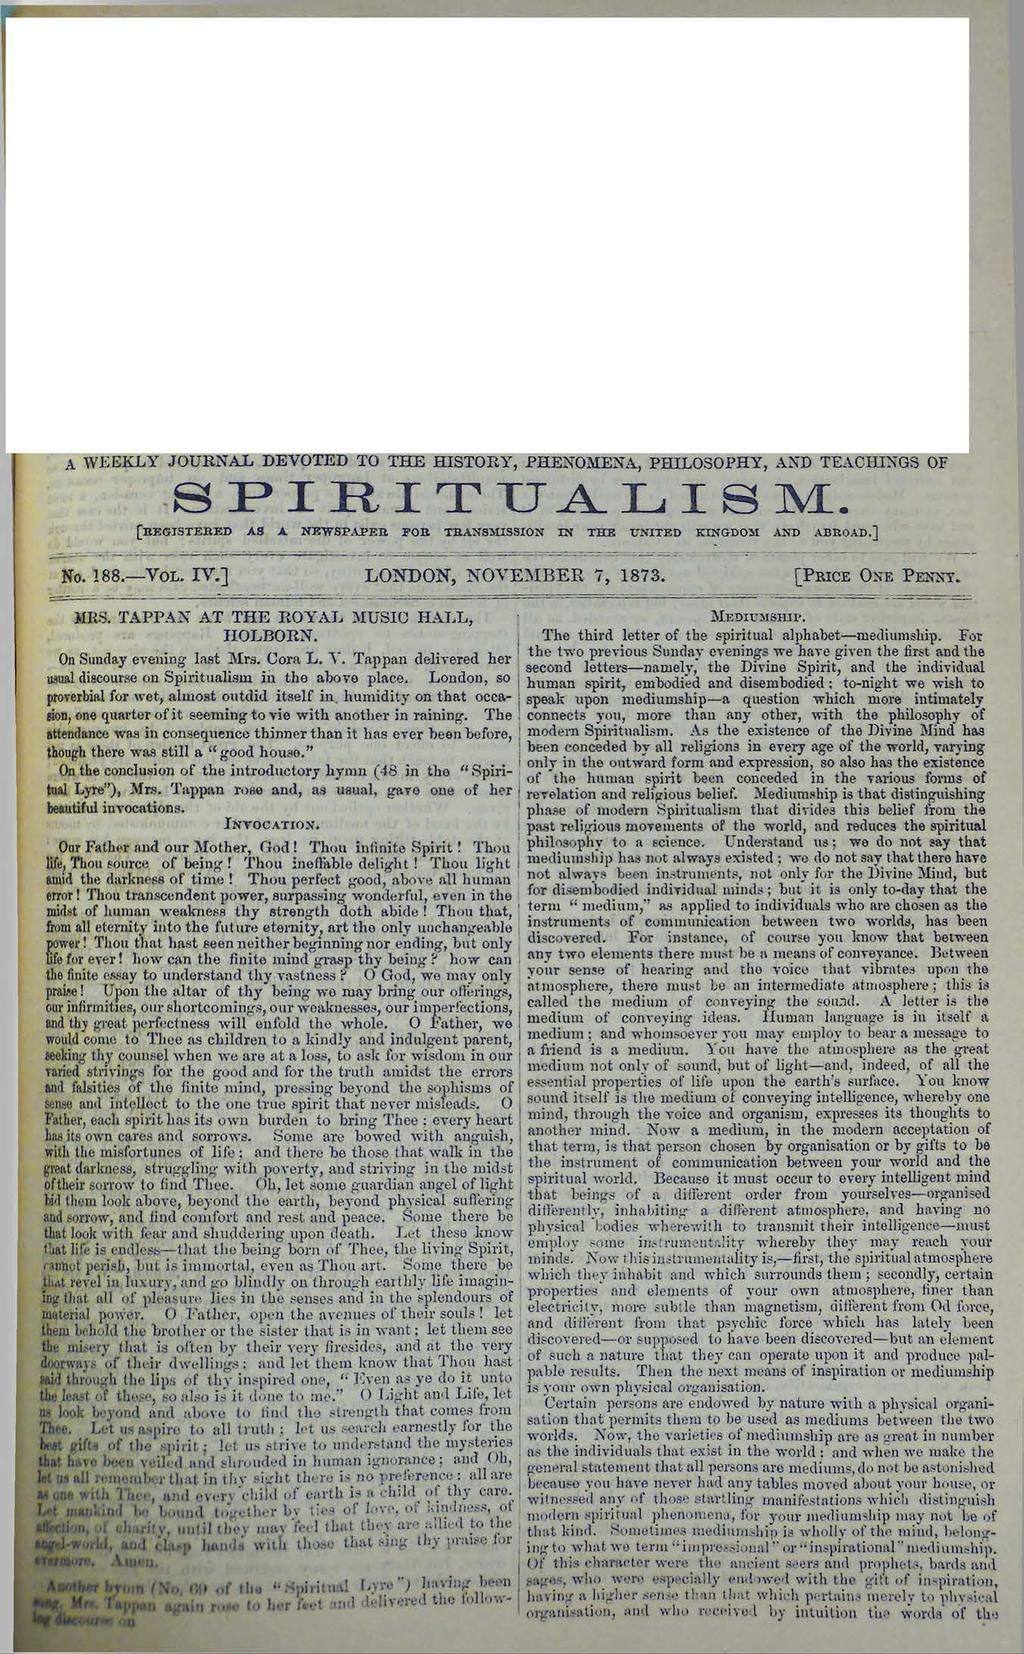 A WEEKLY JOURNAL DEVOTED TO THE HISTORY, PHENOMENA, PHILOSOPHY, AND TEACHINGS OF SPIRITUALISM. [r egistered as a new spaper for transmission in the unit ed kingdom and abroad.] No. 188. Yol. IV.